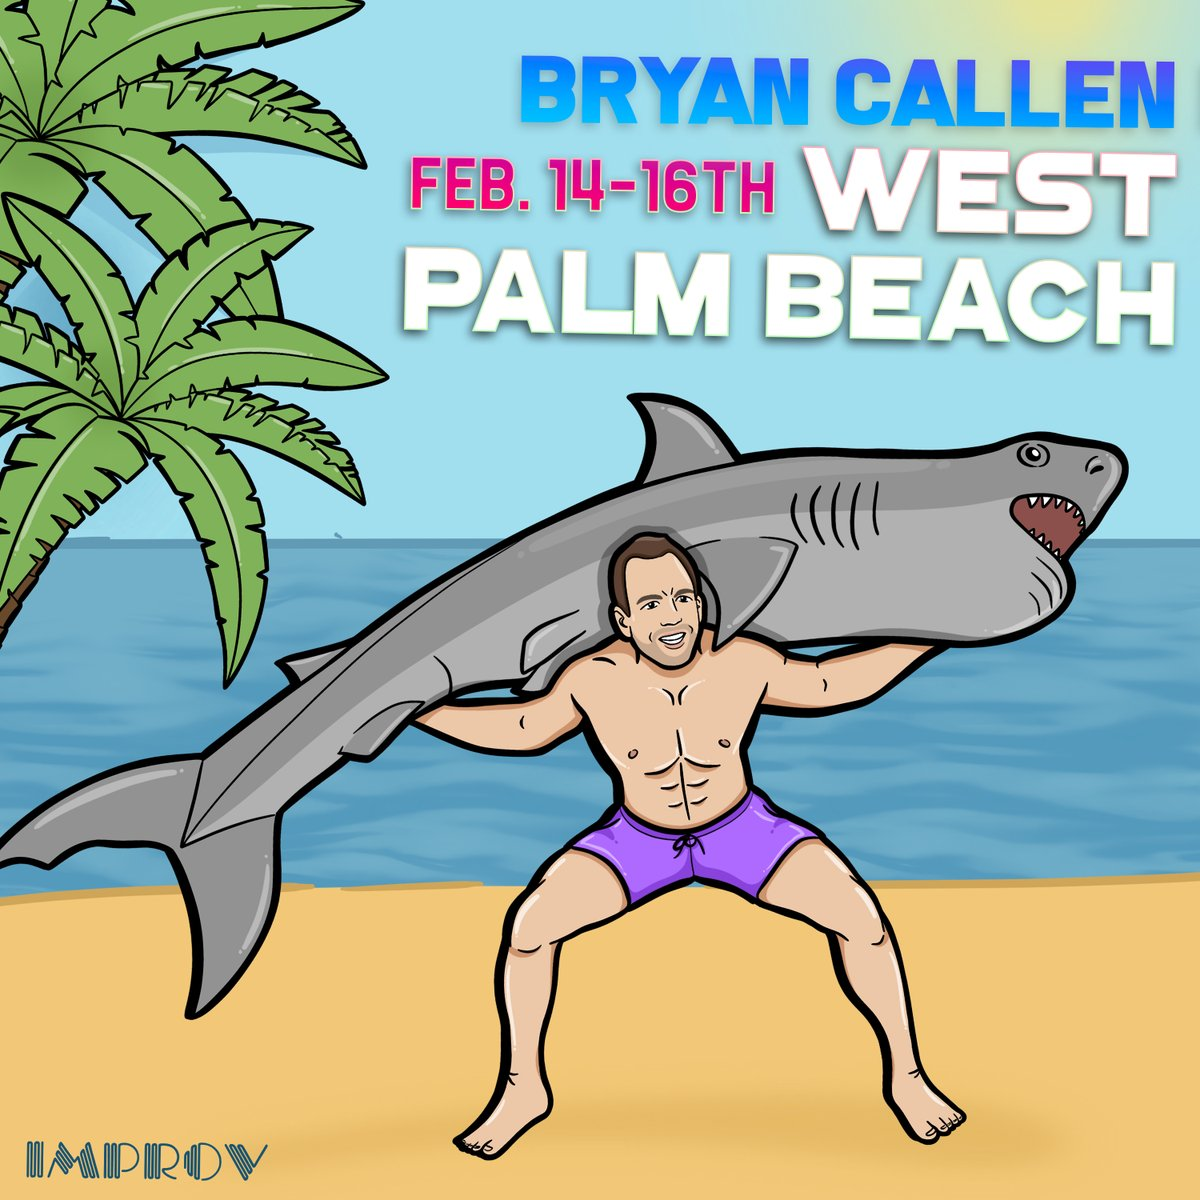 Florida! I'll be in #WestPalmBeach @pbimprov the 14th-16th! 🦈🦈 🎟🎟 bit.ly/callen-wpb